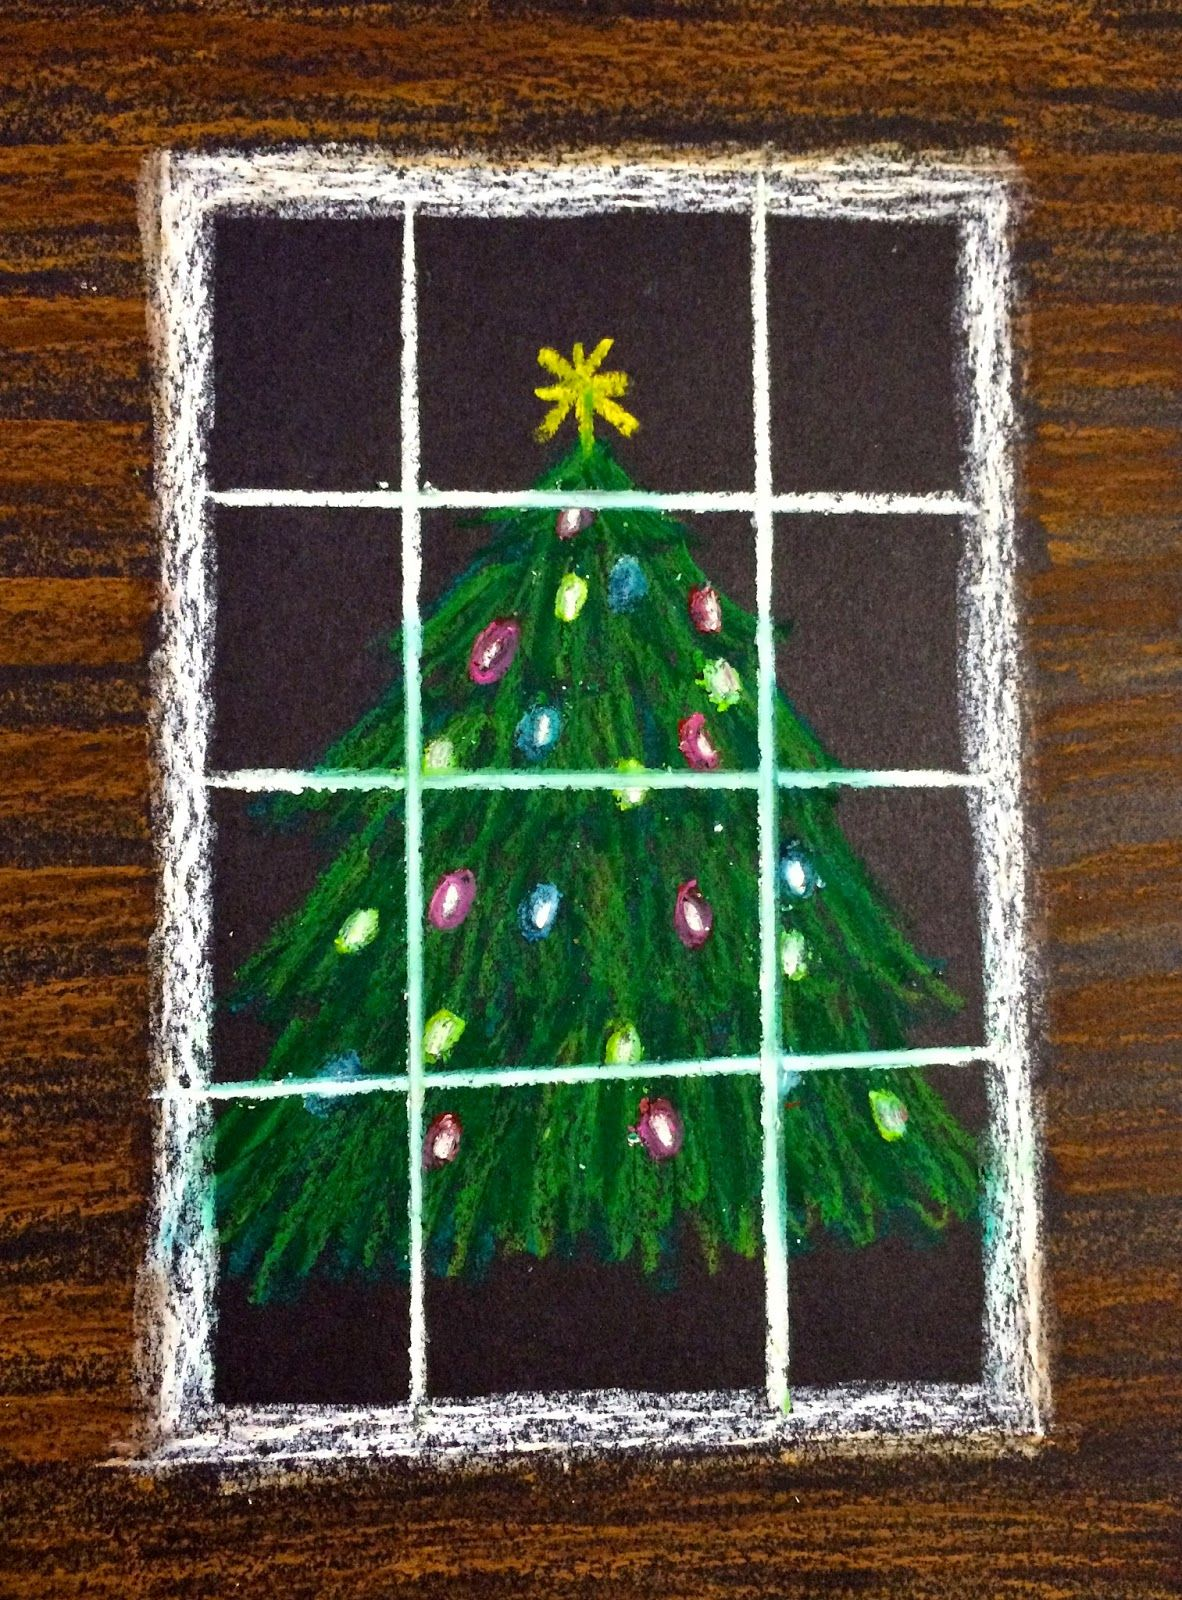 Kathy S Angelnik Designs Art Project Ideas Oil Pastel Christmas Tree In A Snowstorm Christmas Art Christmas Arts And Crafts Christmas Art Projects